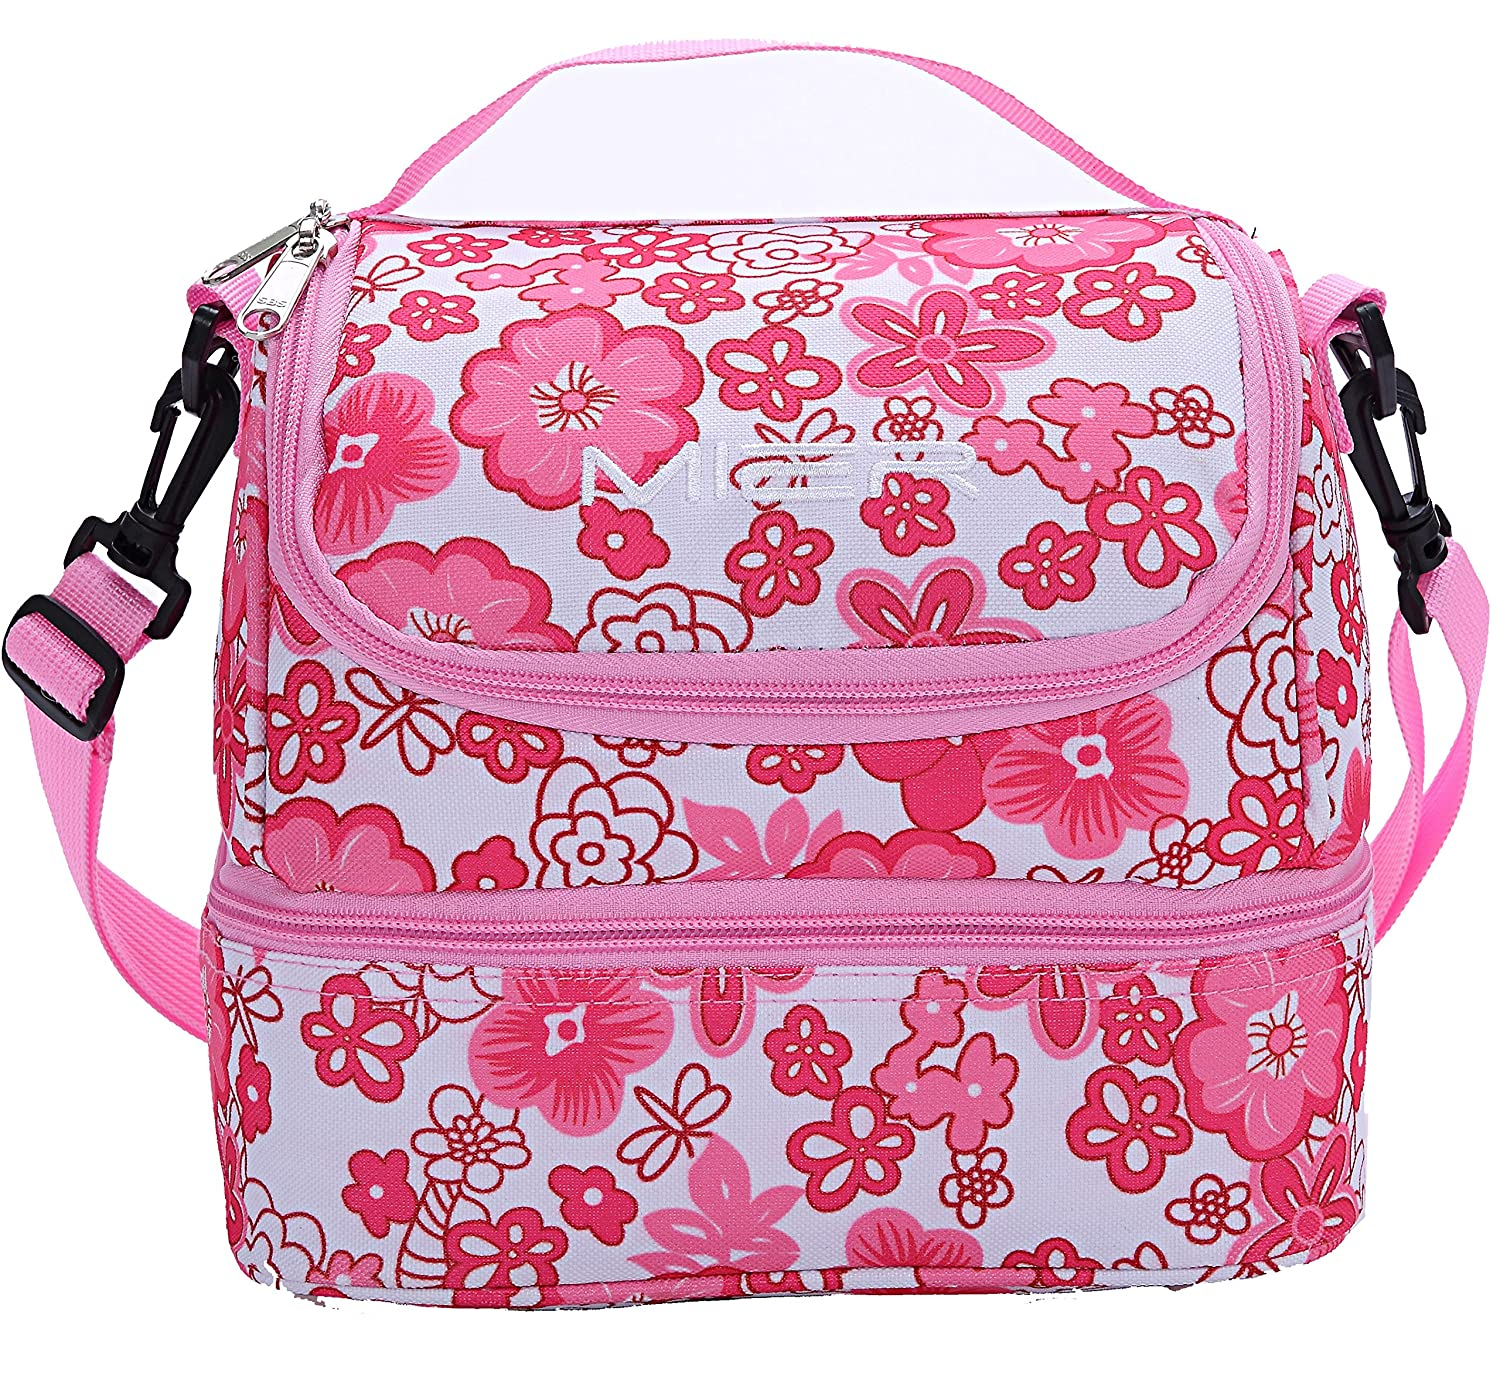 MIER Double Decker Insulated Lunch Box Pink Soft Cooler Bag Thermal Lunch Tote with Shoulder Strap Pink Flower